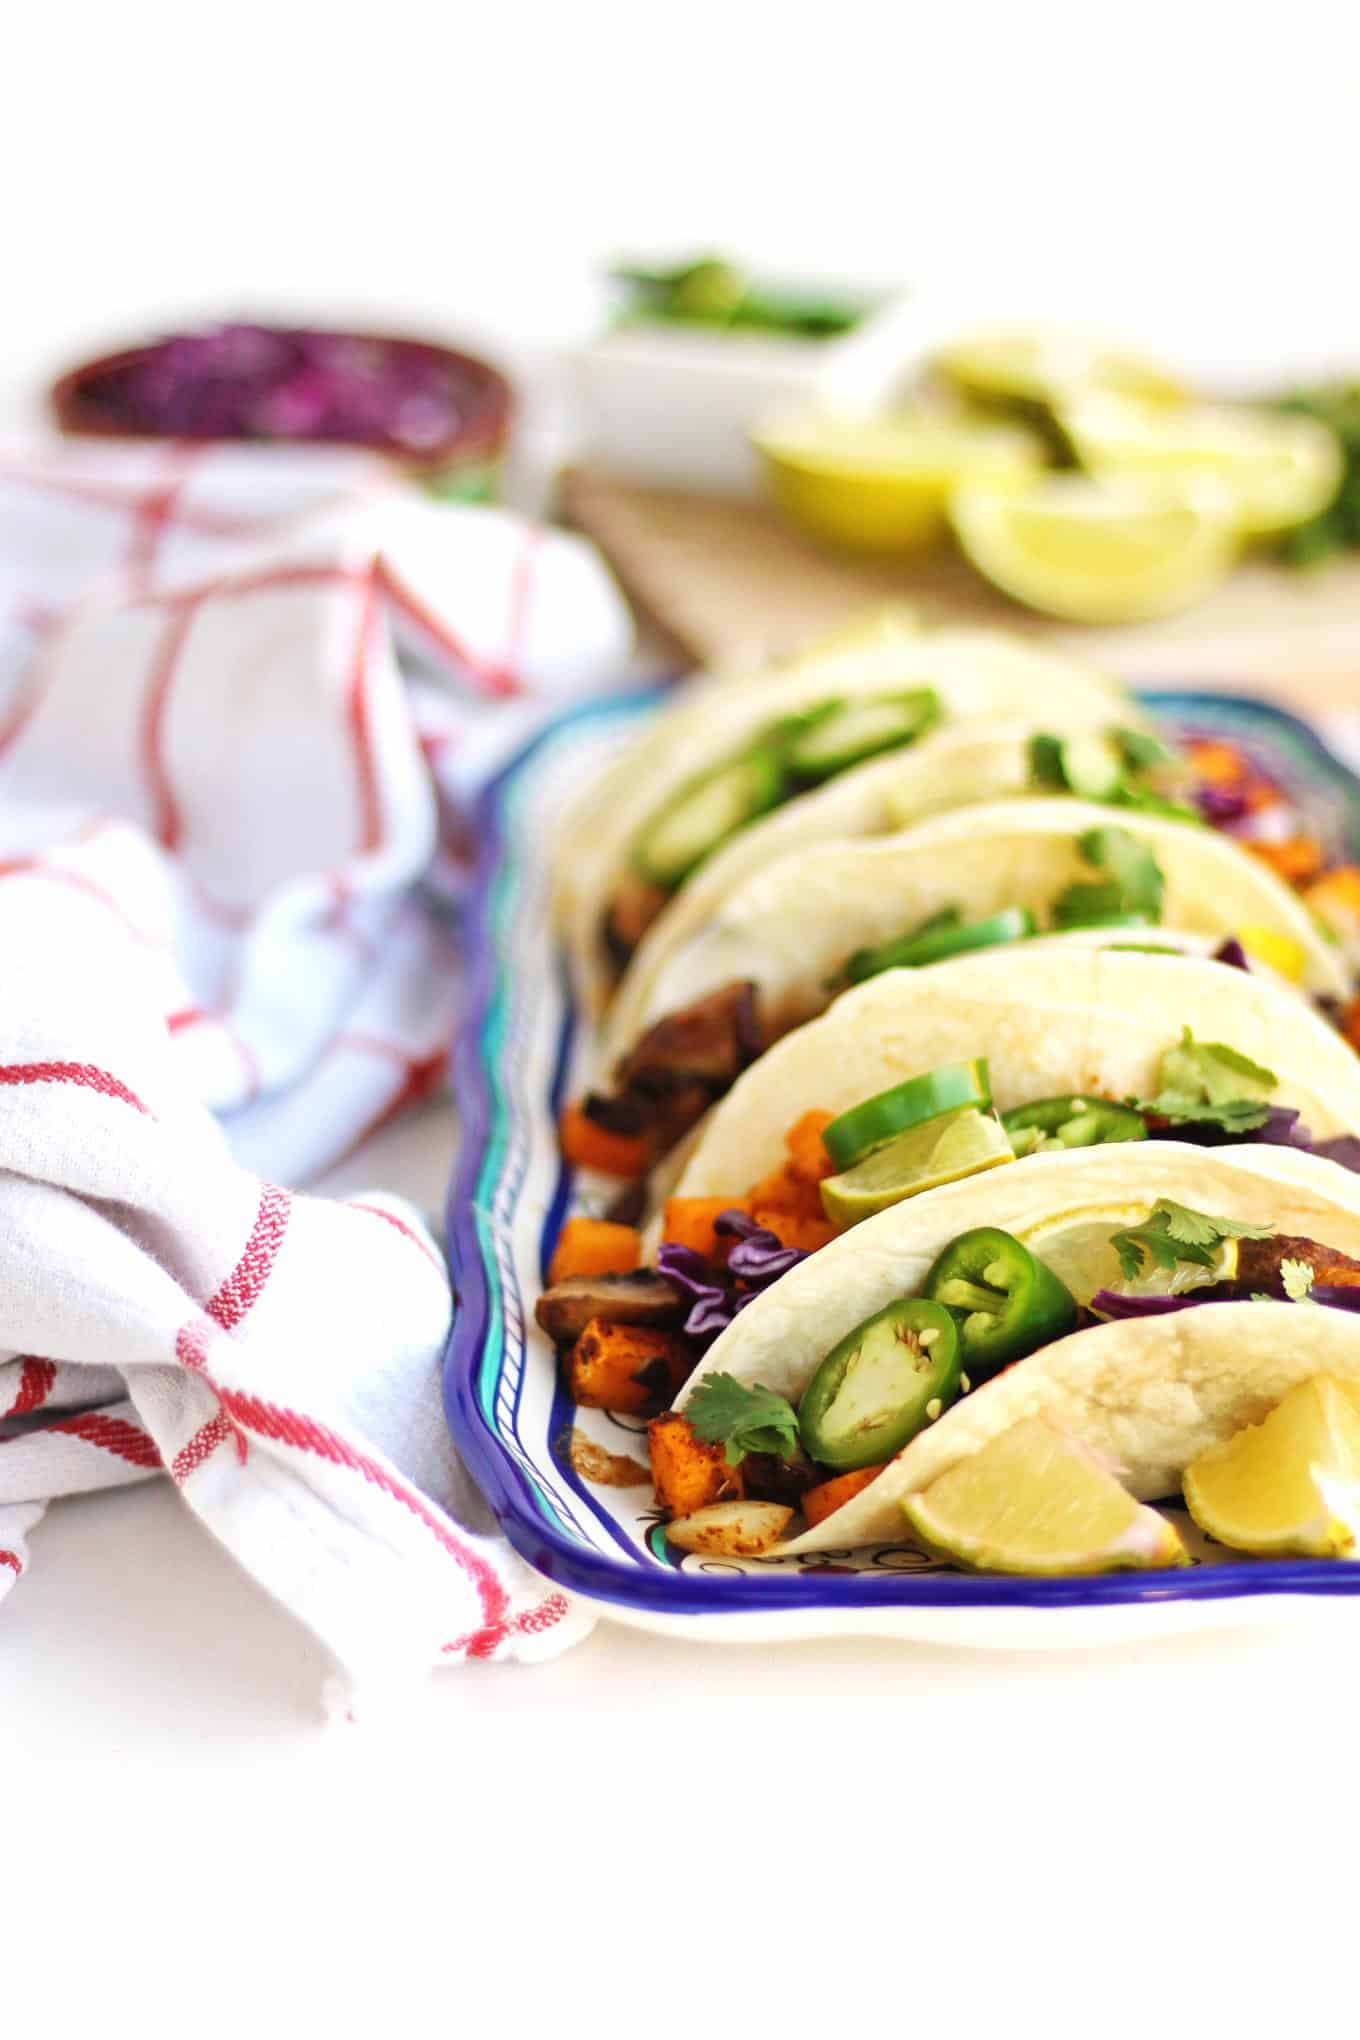 vegan black bean tacos on a plate